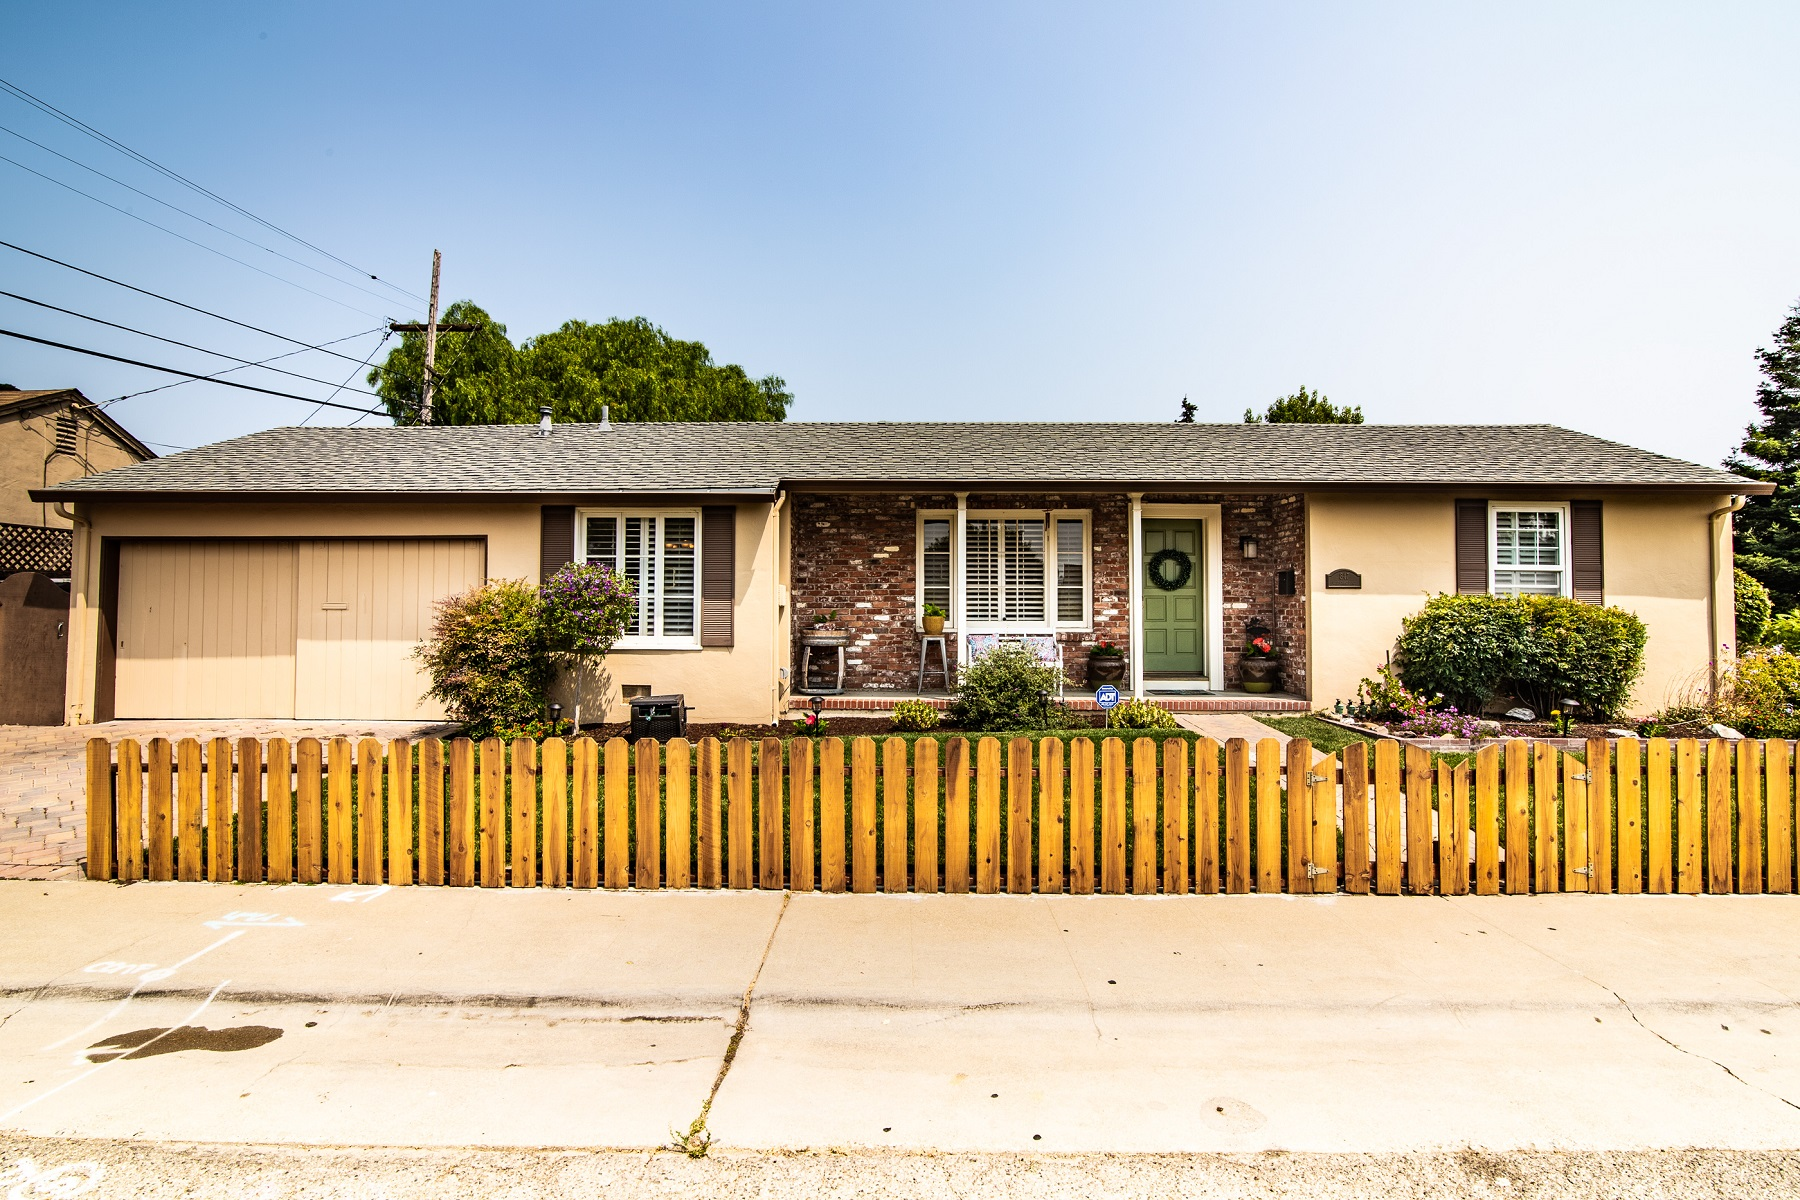 Single Family Home for Active at 847 W. Grant Place, San Mateo CA 94402 847 W. Grant Place San Mateo, California 94402 United States